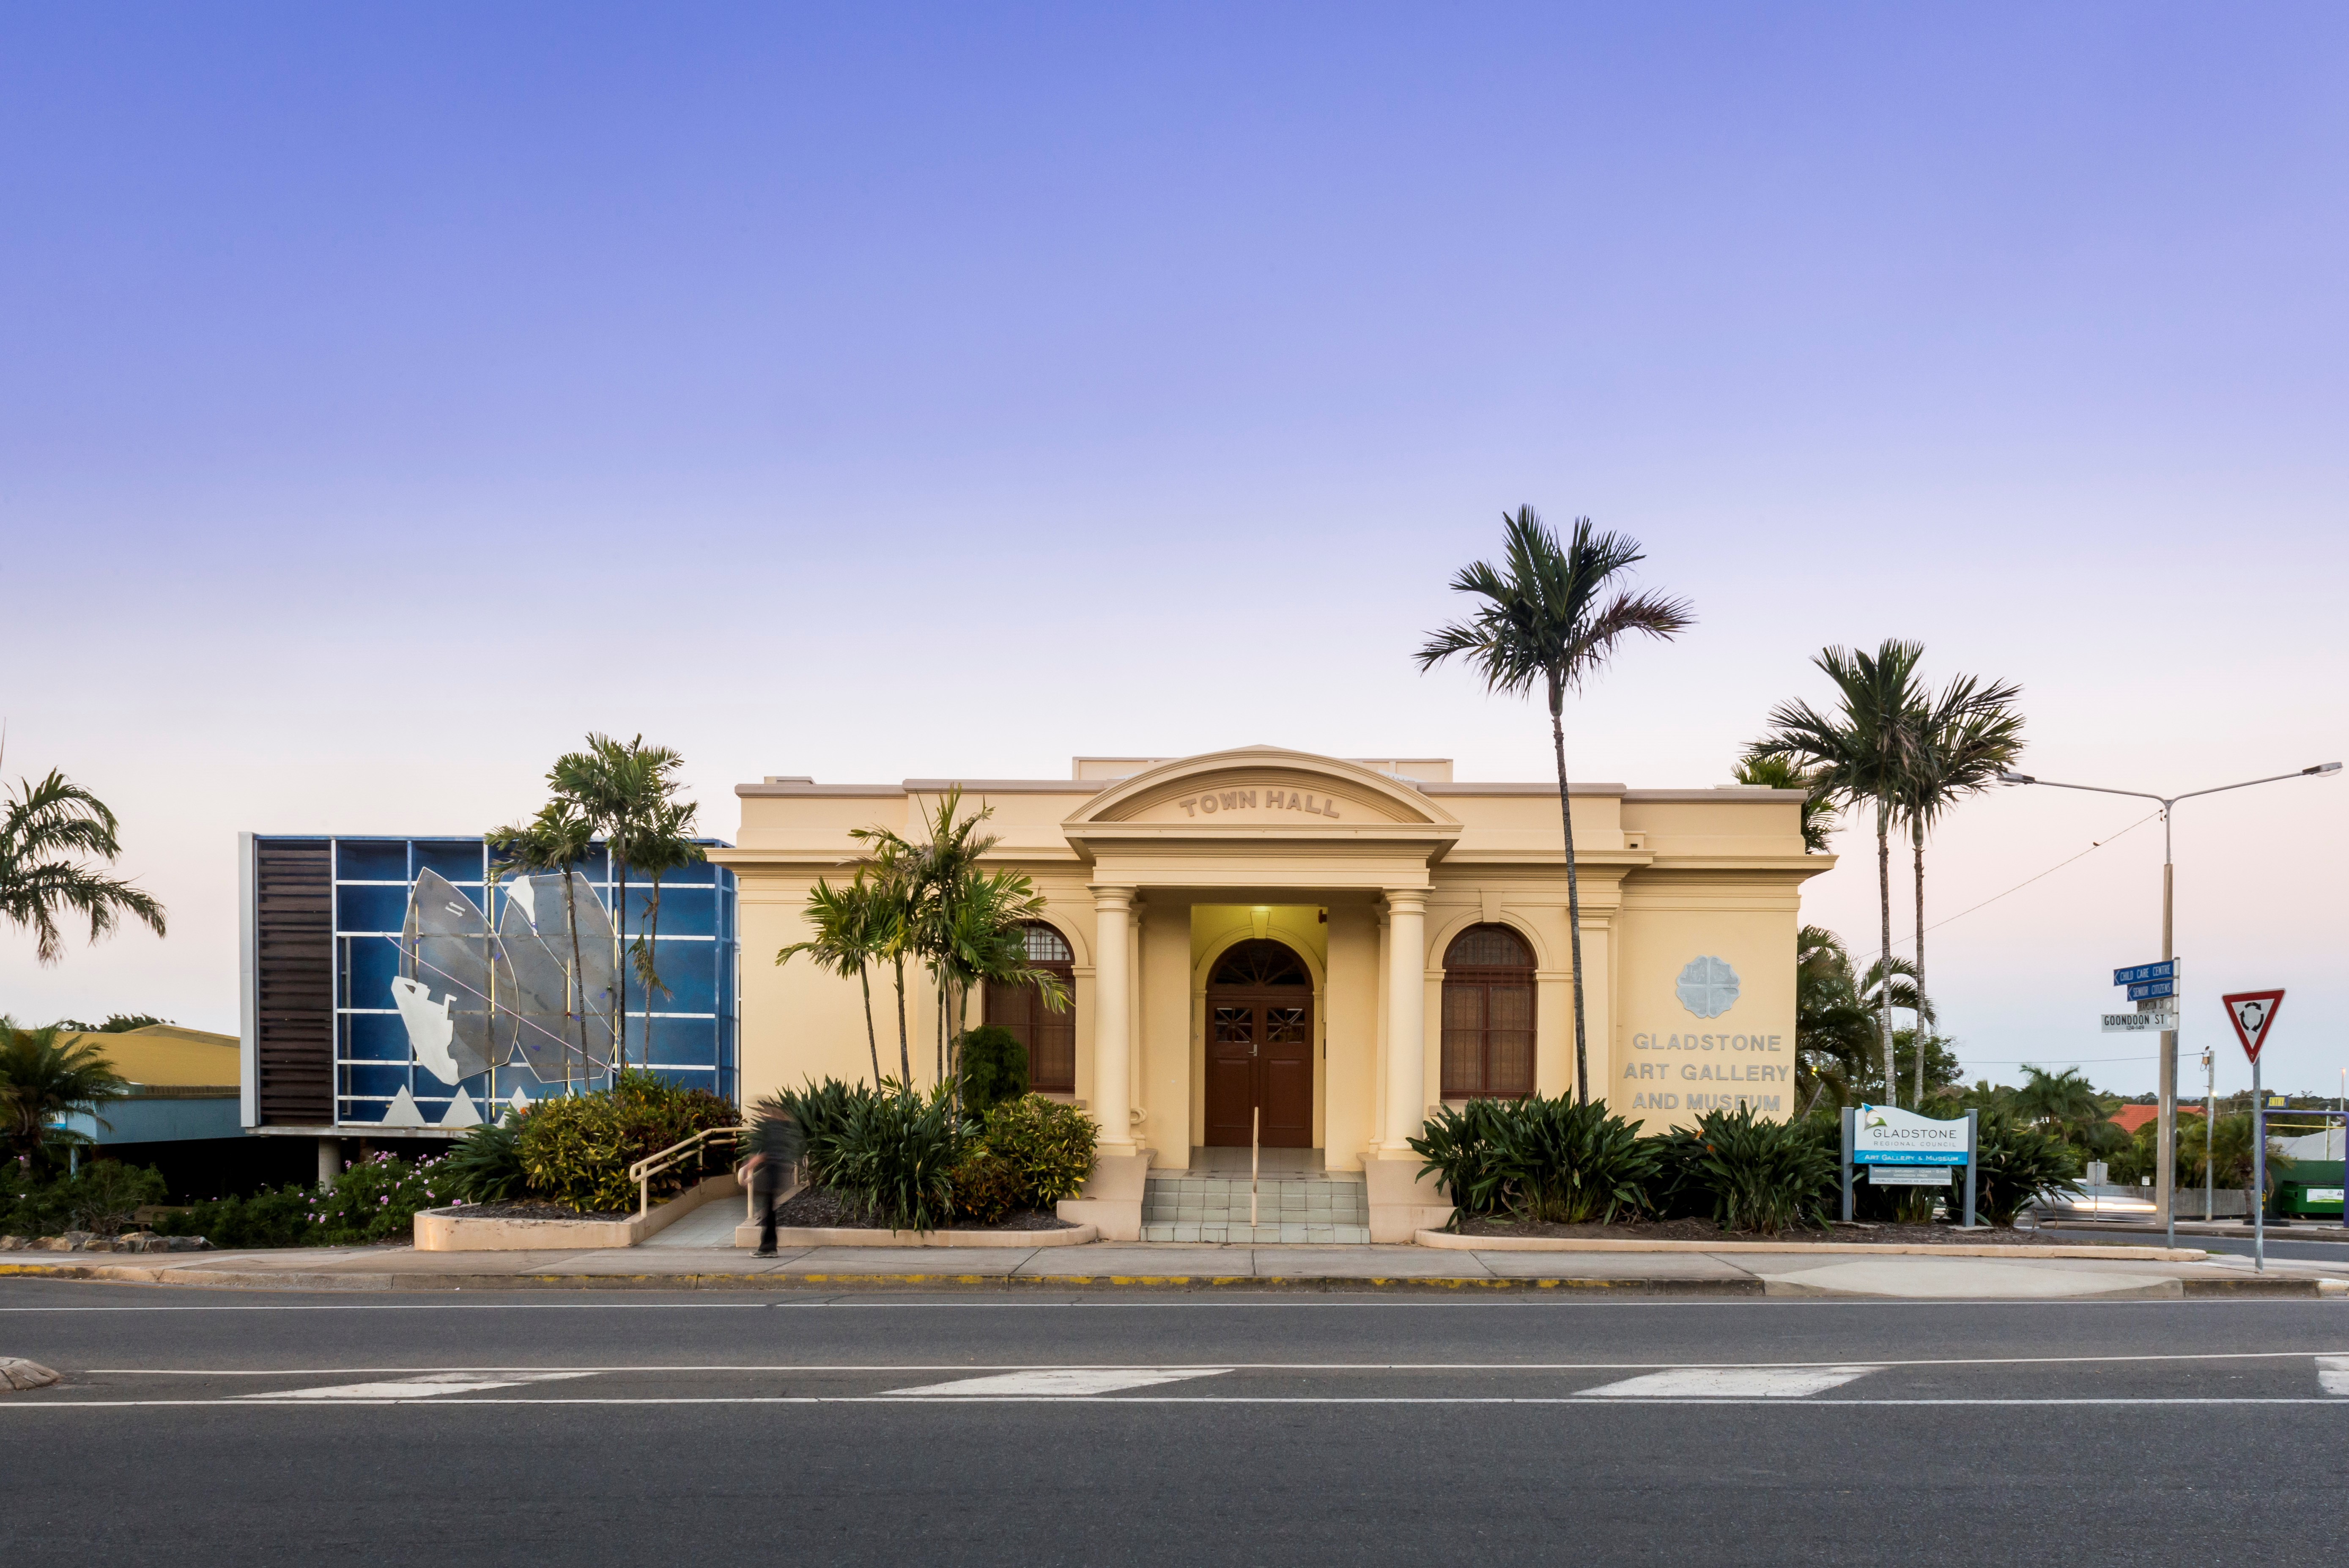 Gladstone Regional Art Gallery & Museum is housed within the old Town Hall (Chrissy Harris Photography)